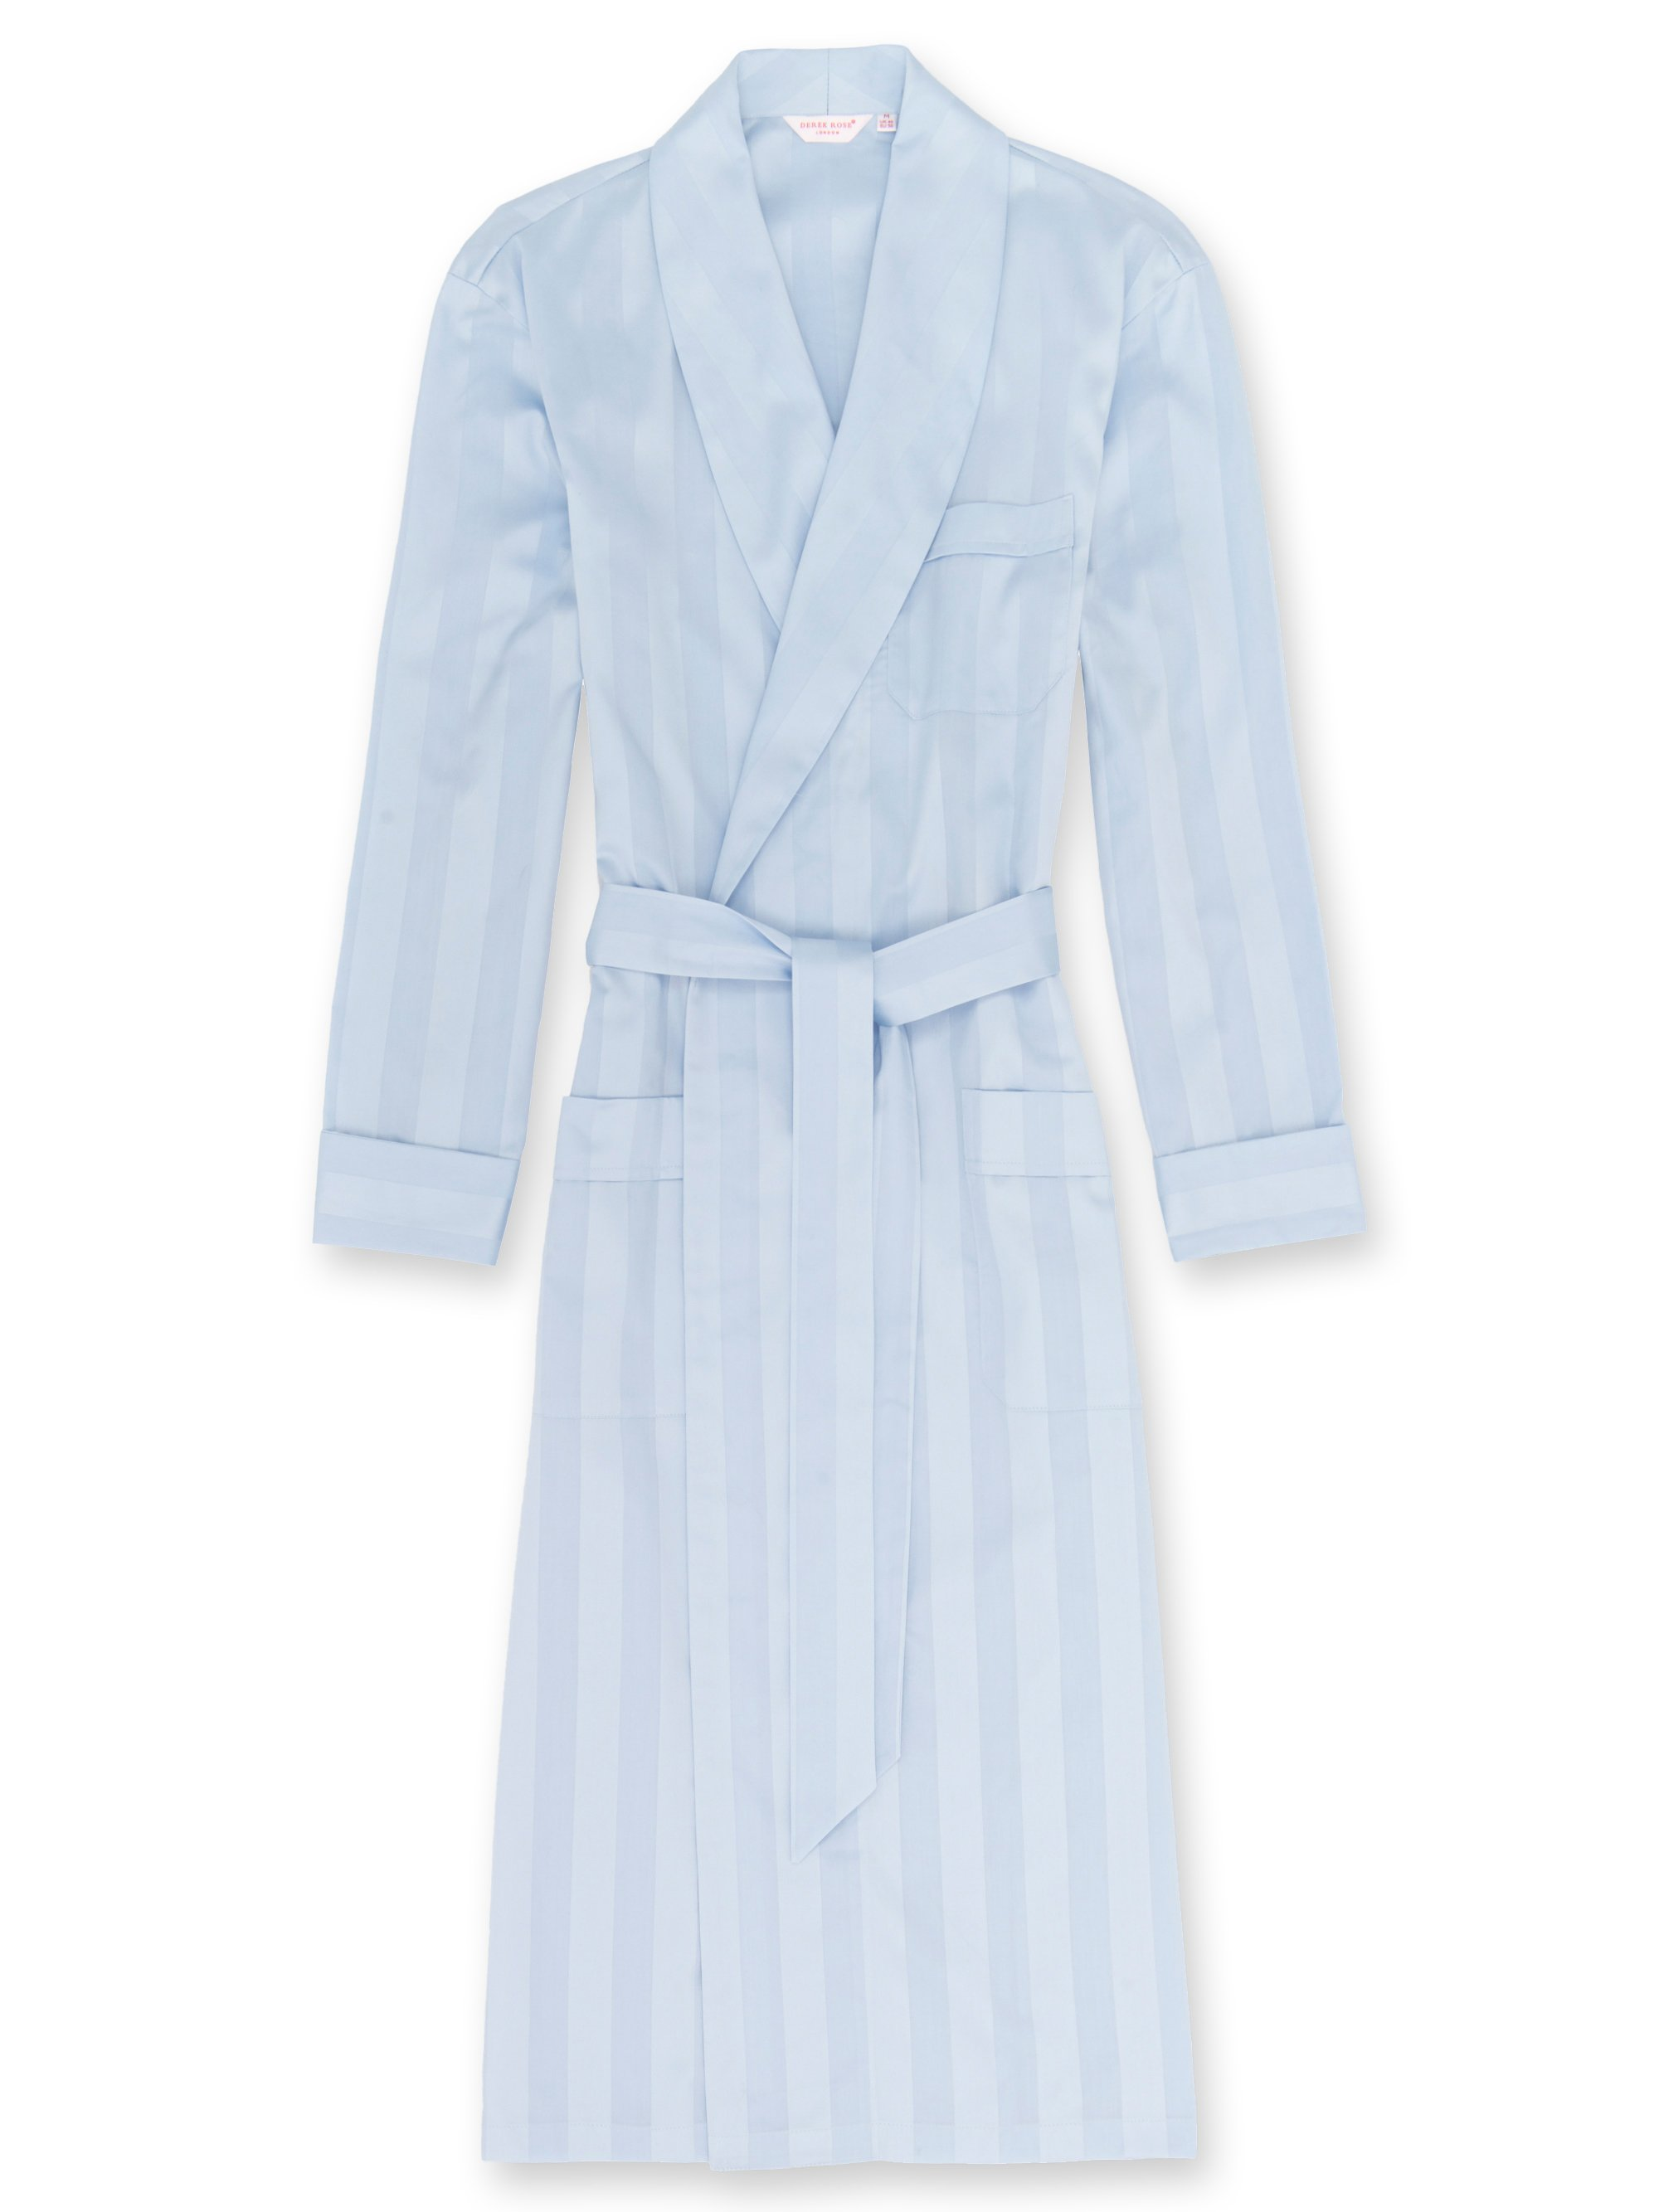 Men's Classic Dressing Gown Lingfield Cotton Satin Stripe Blue